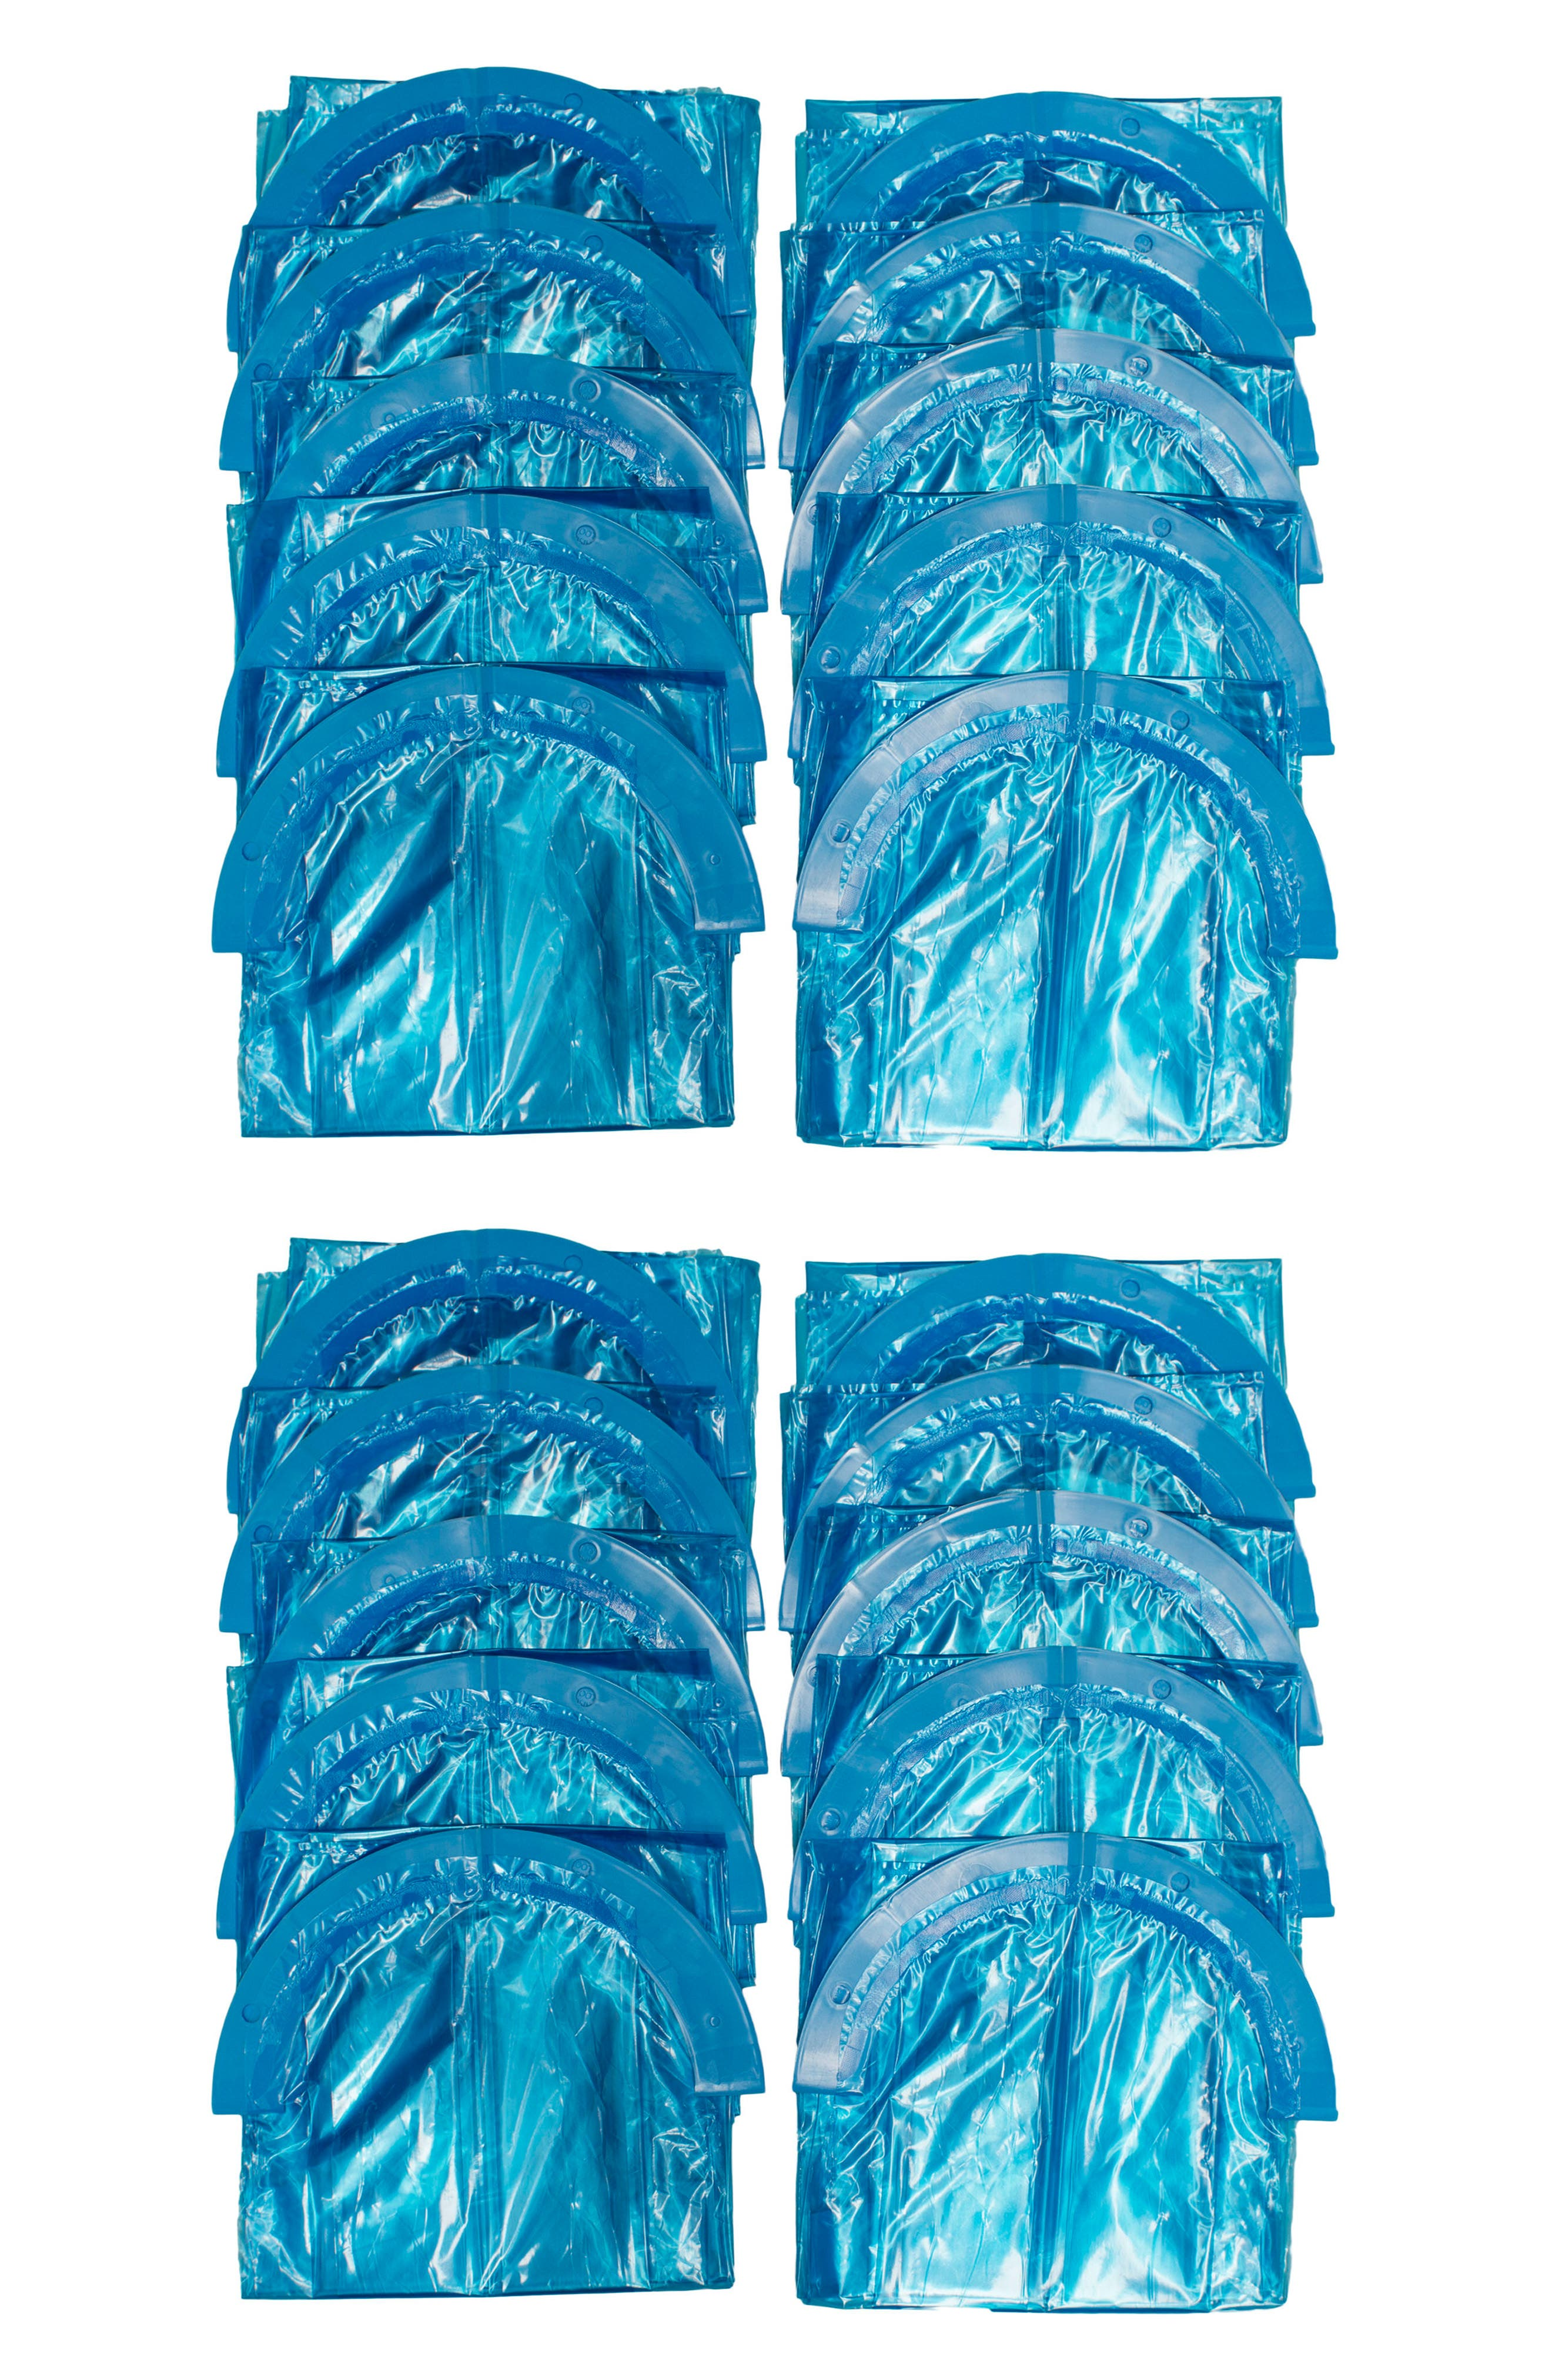 Twist'r Diaper Disposal System Set of 20 Refill Bags,                         Main,                         color,